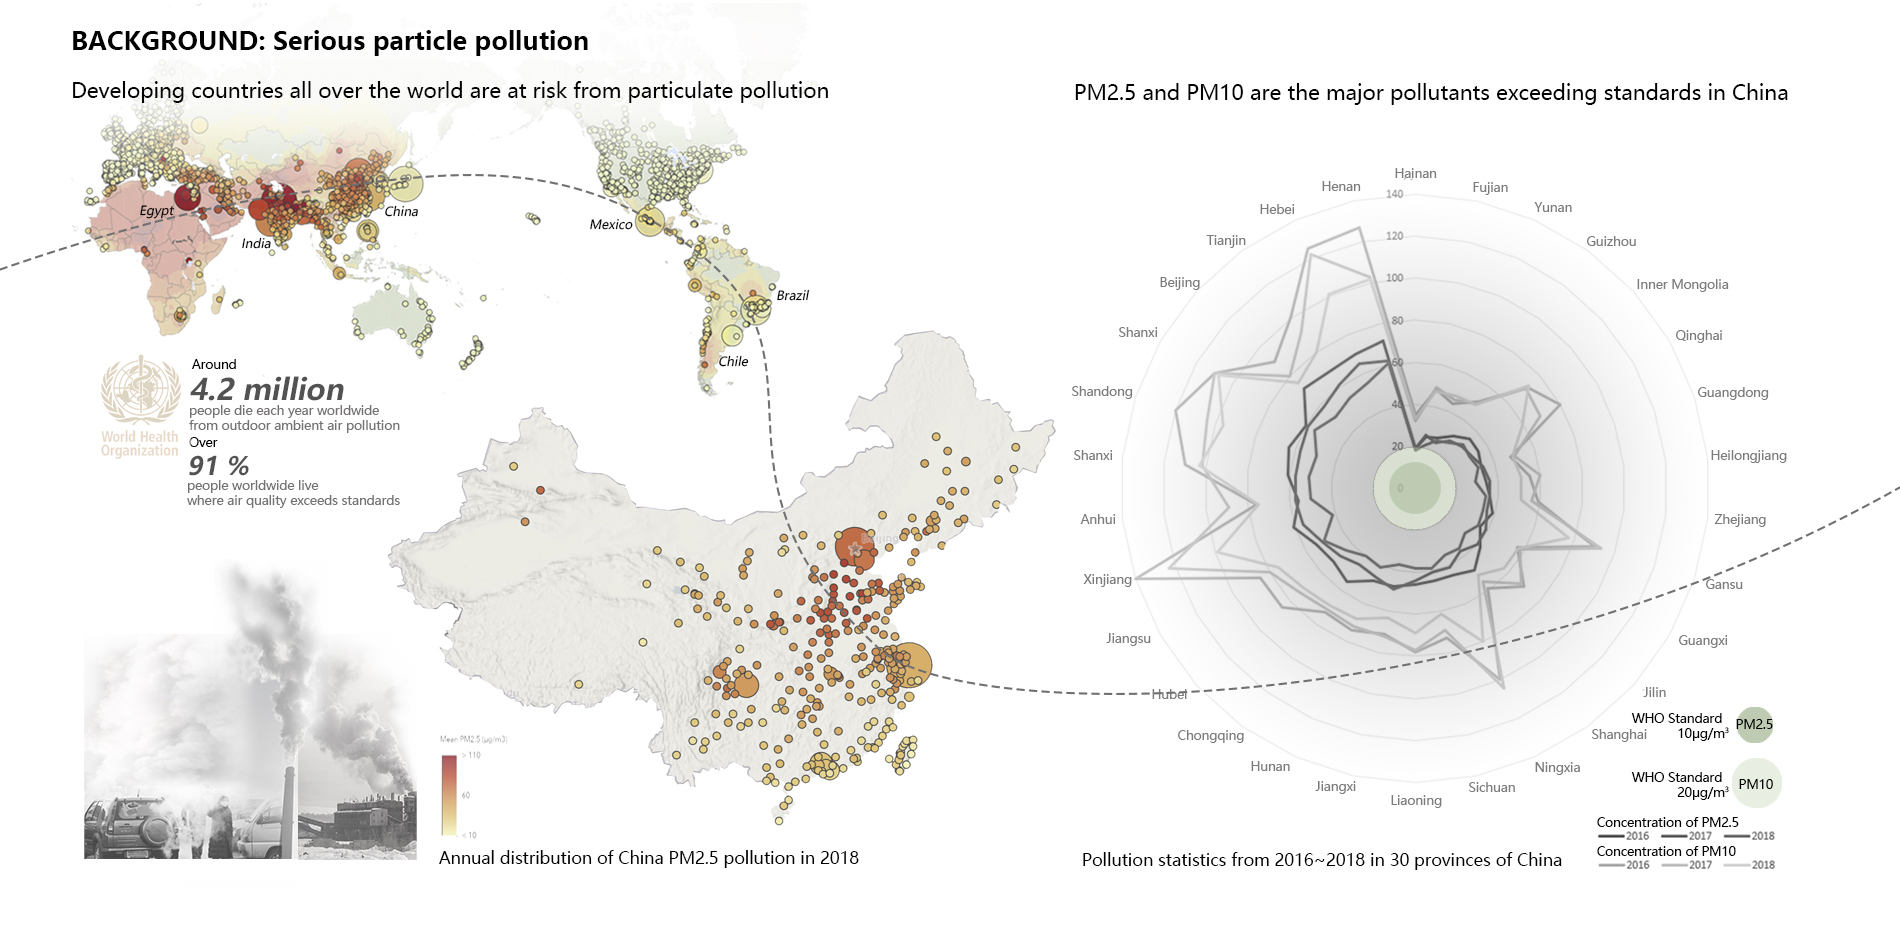 Background: Serious particle pollution